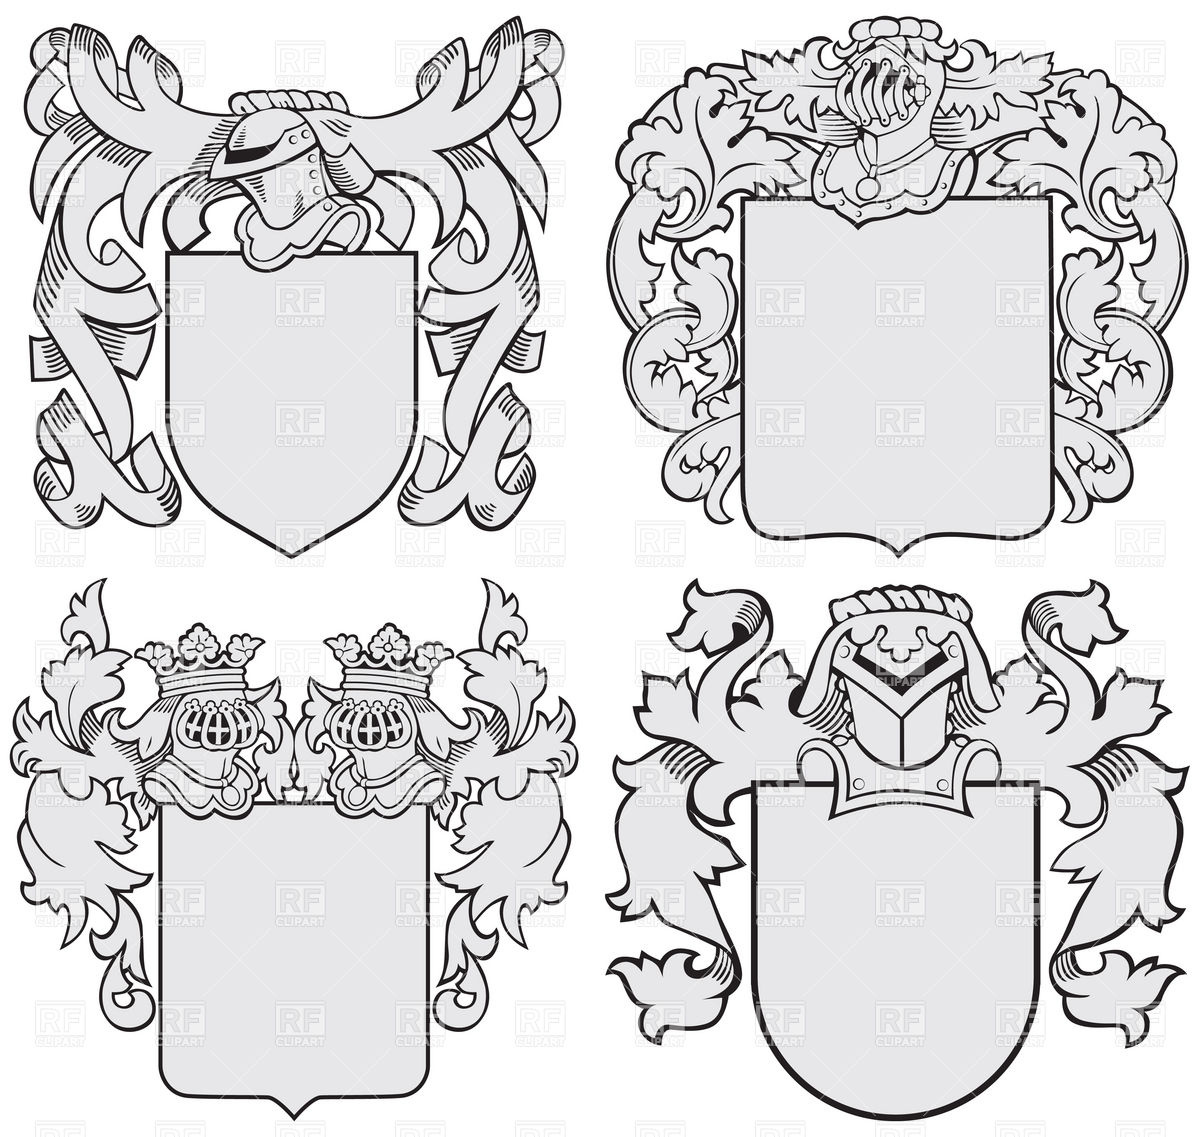 1200x1137 Medieval Coats Of Arms Heraldic Templates With Helmet And Shield